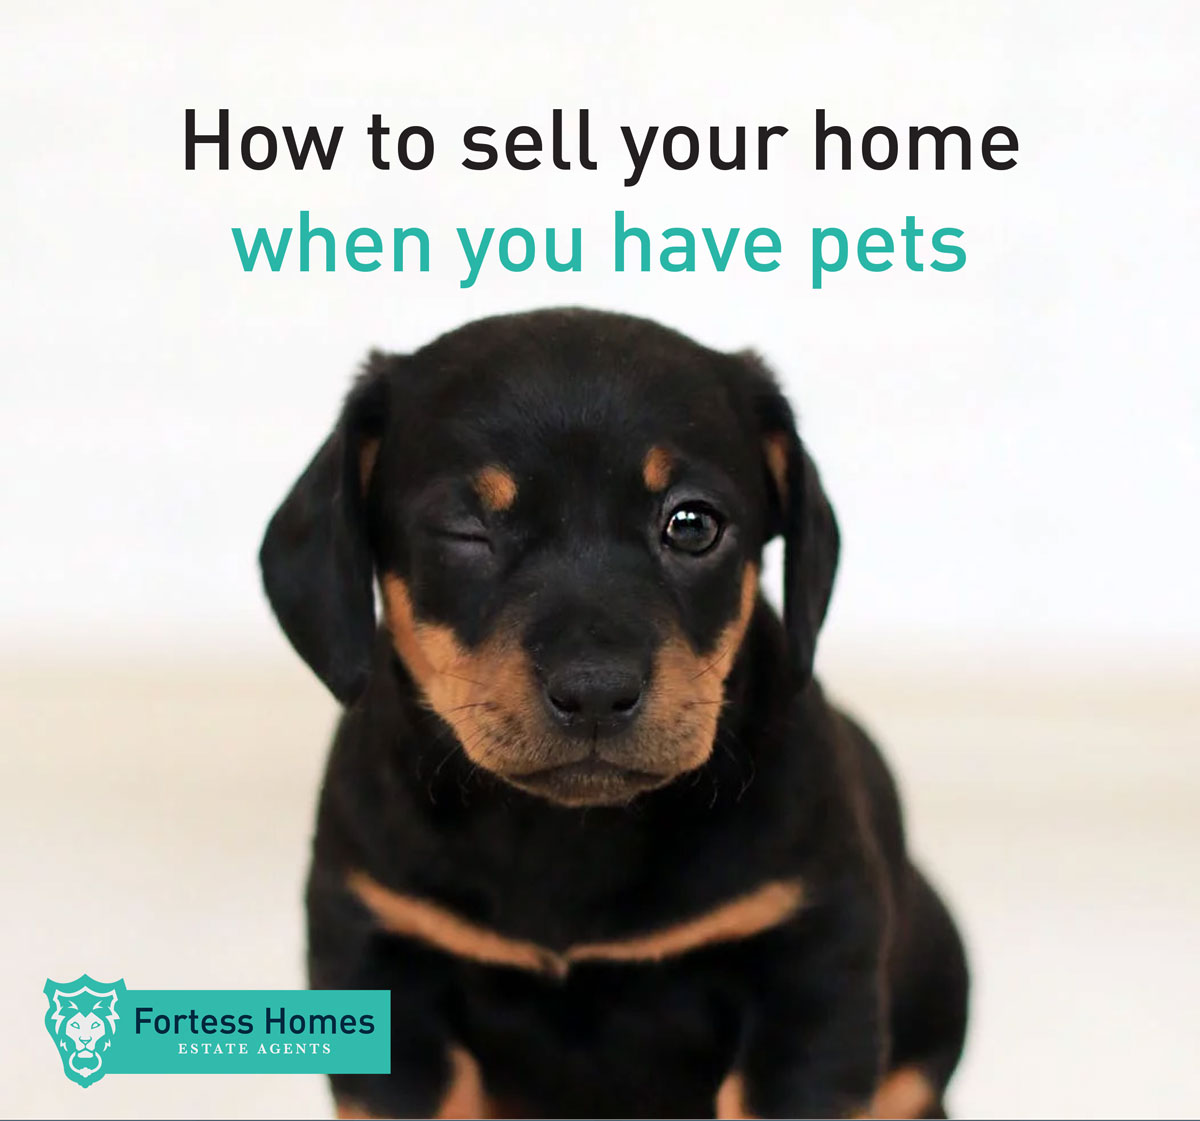 How to sell your home when you have pets